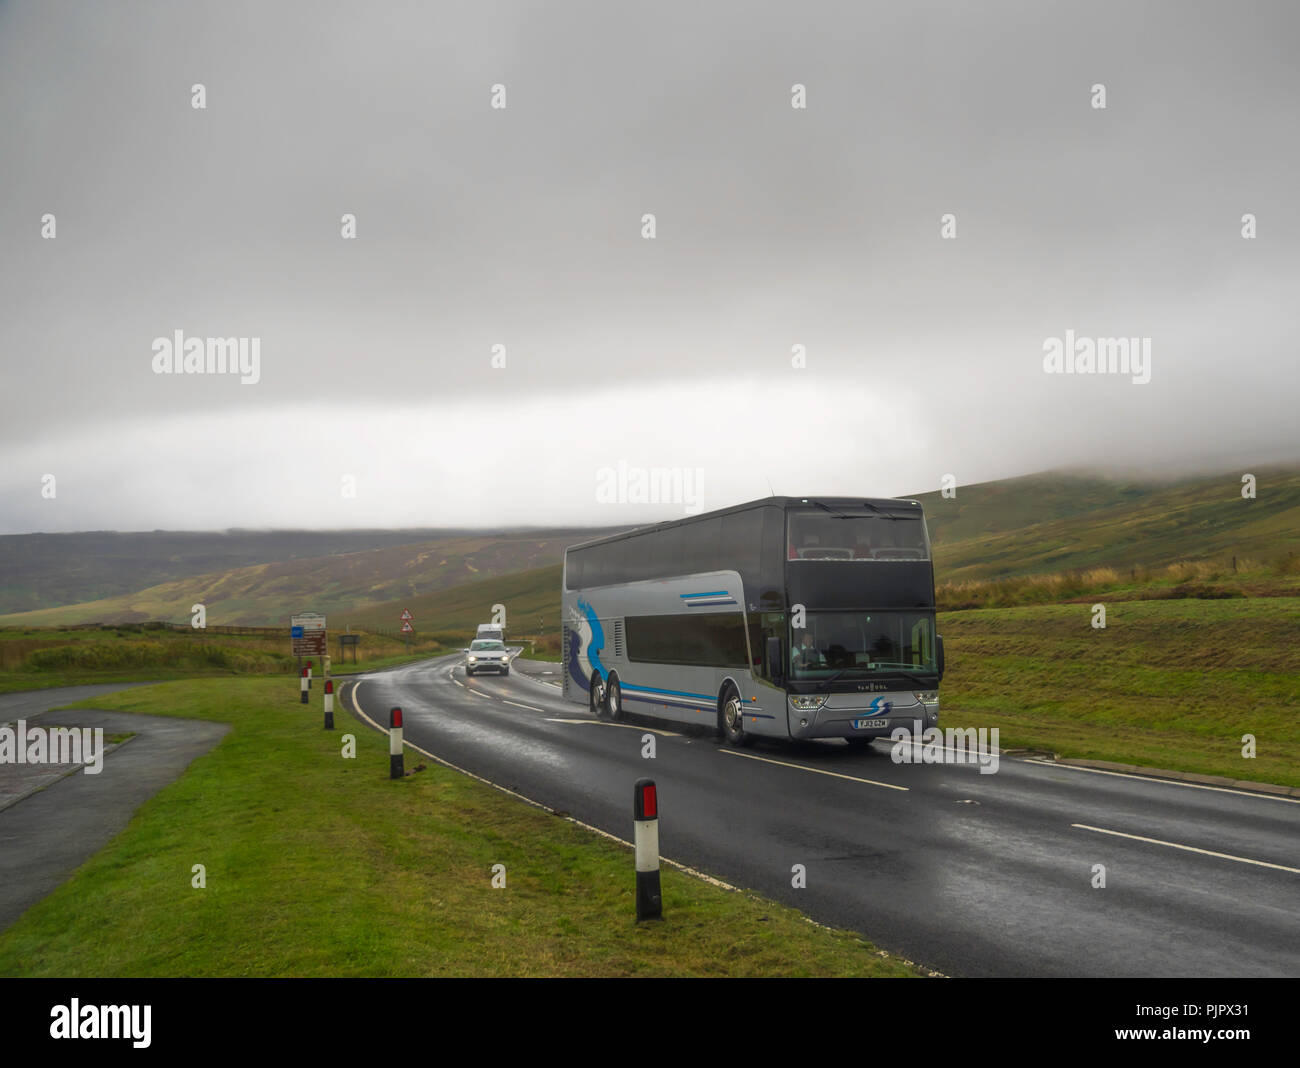 A Luxury Coach approaching the Scottish Border from England at Carter Bar on the A68 road in wet rainy adverse conditions - Stock Image